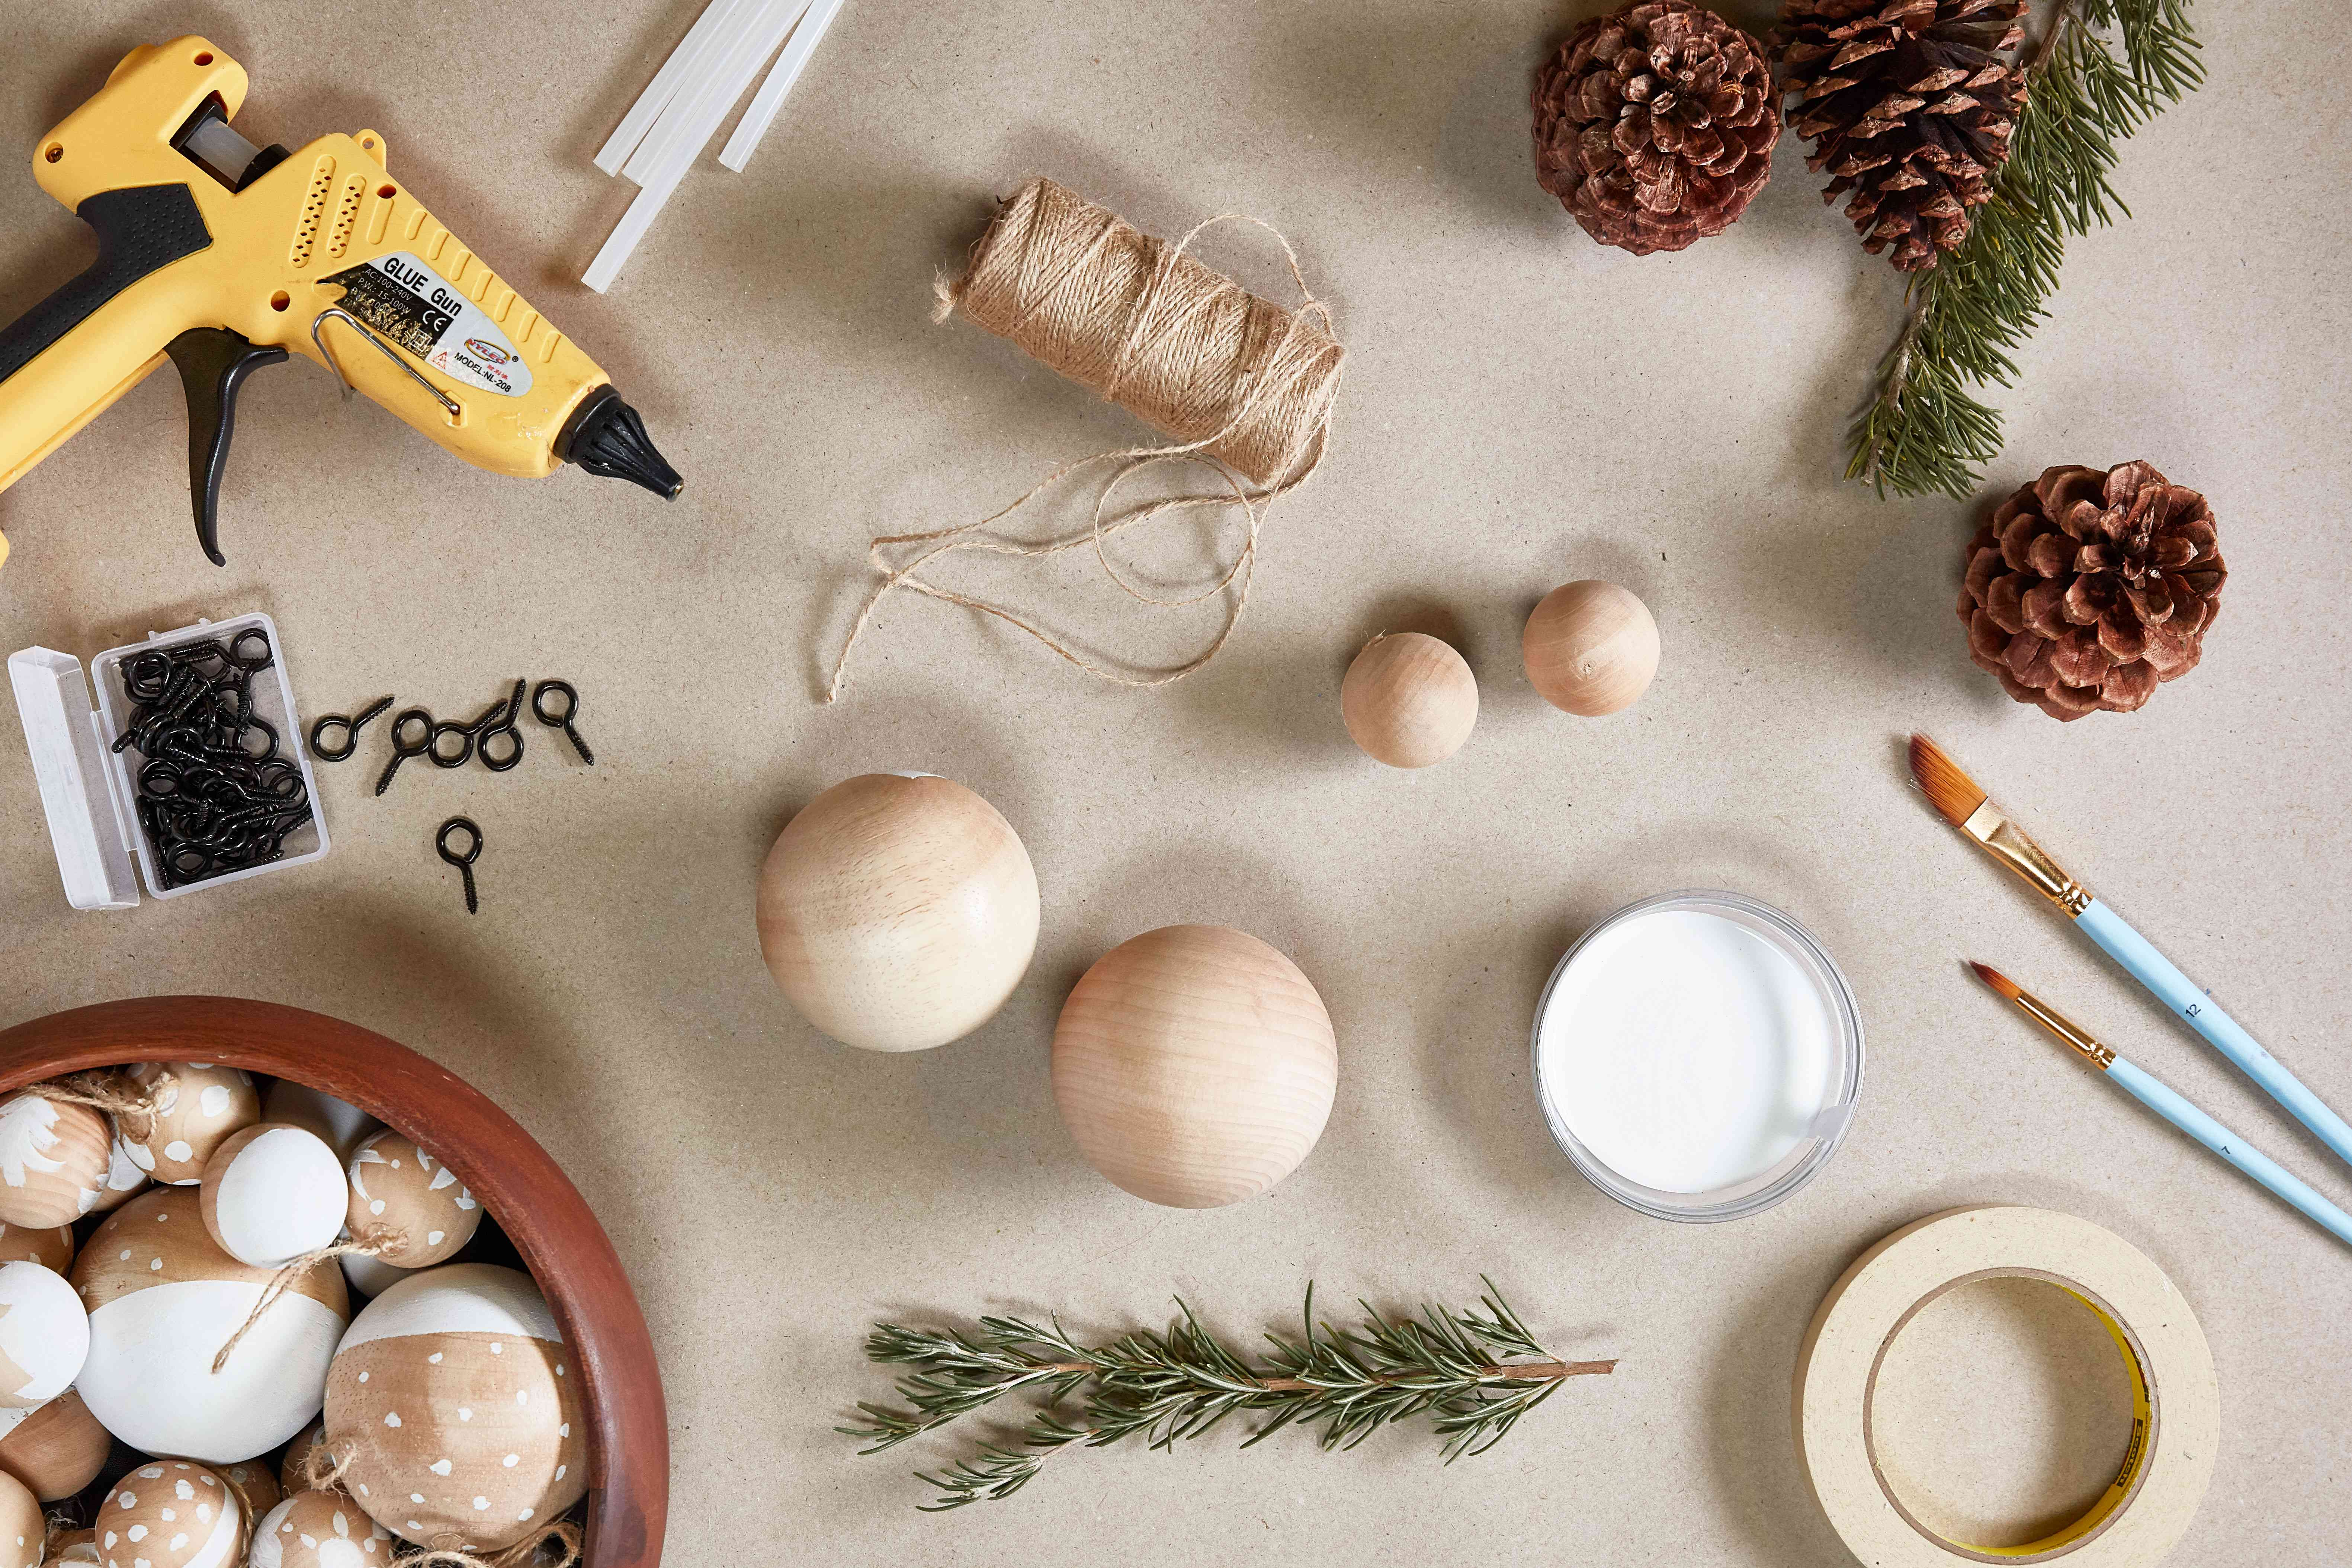 Supplies for painting wooden ornaments